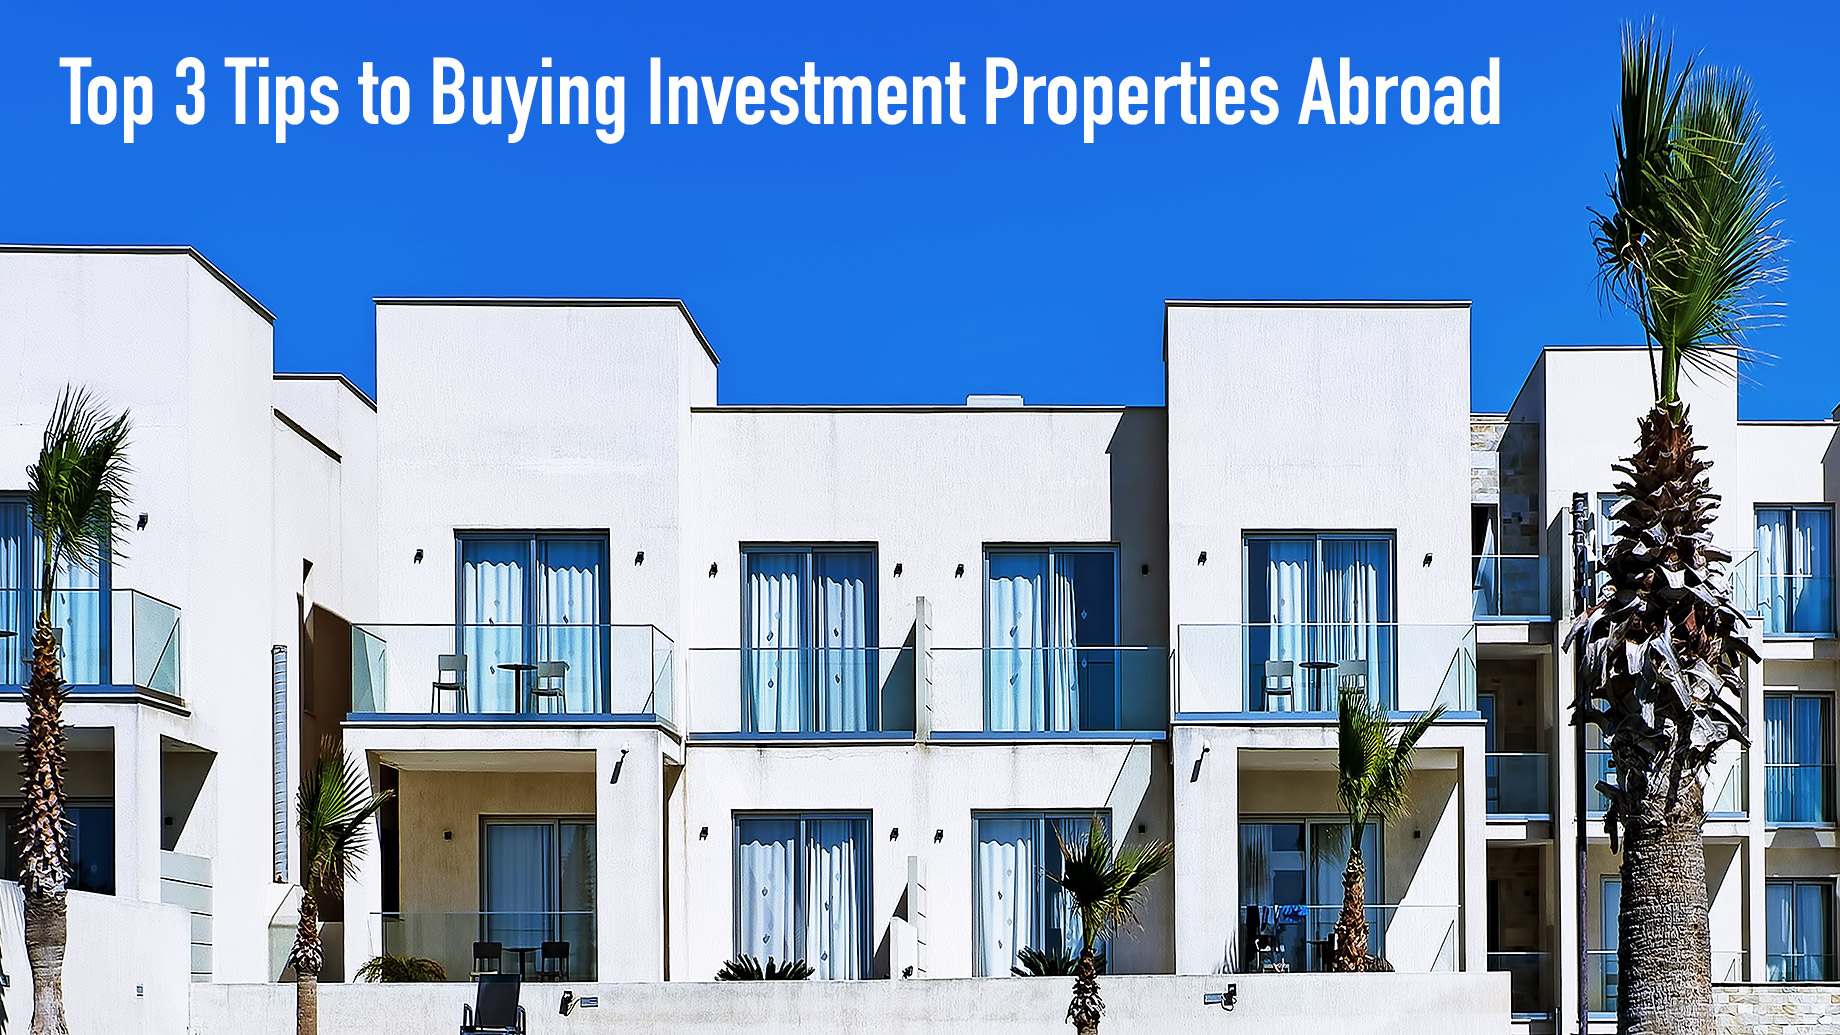 Top 3 Tips to Buying Investment Properties Abroad